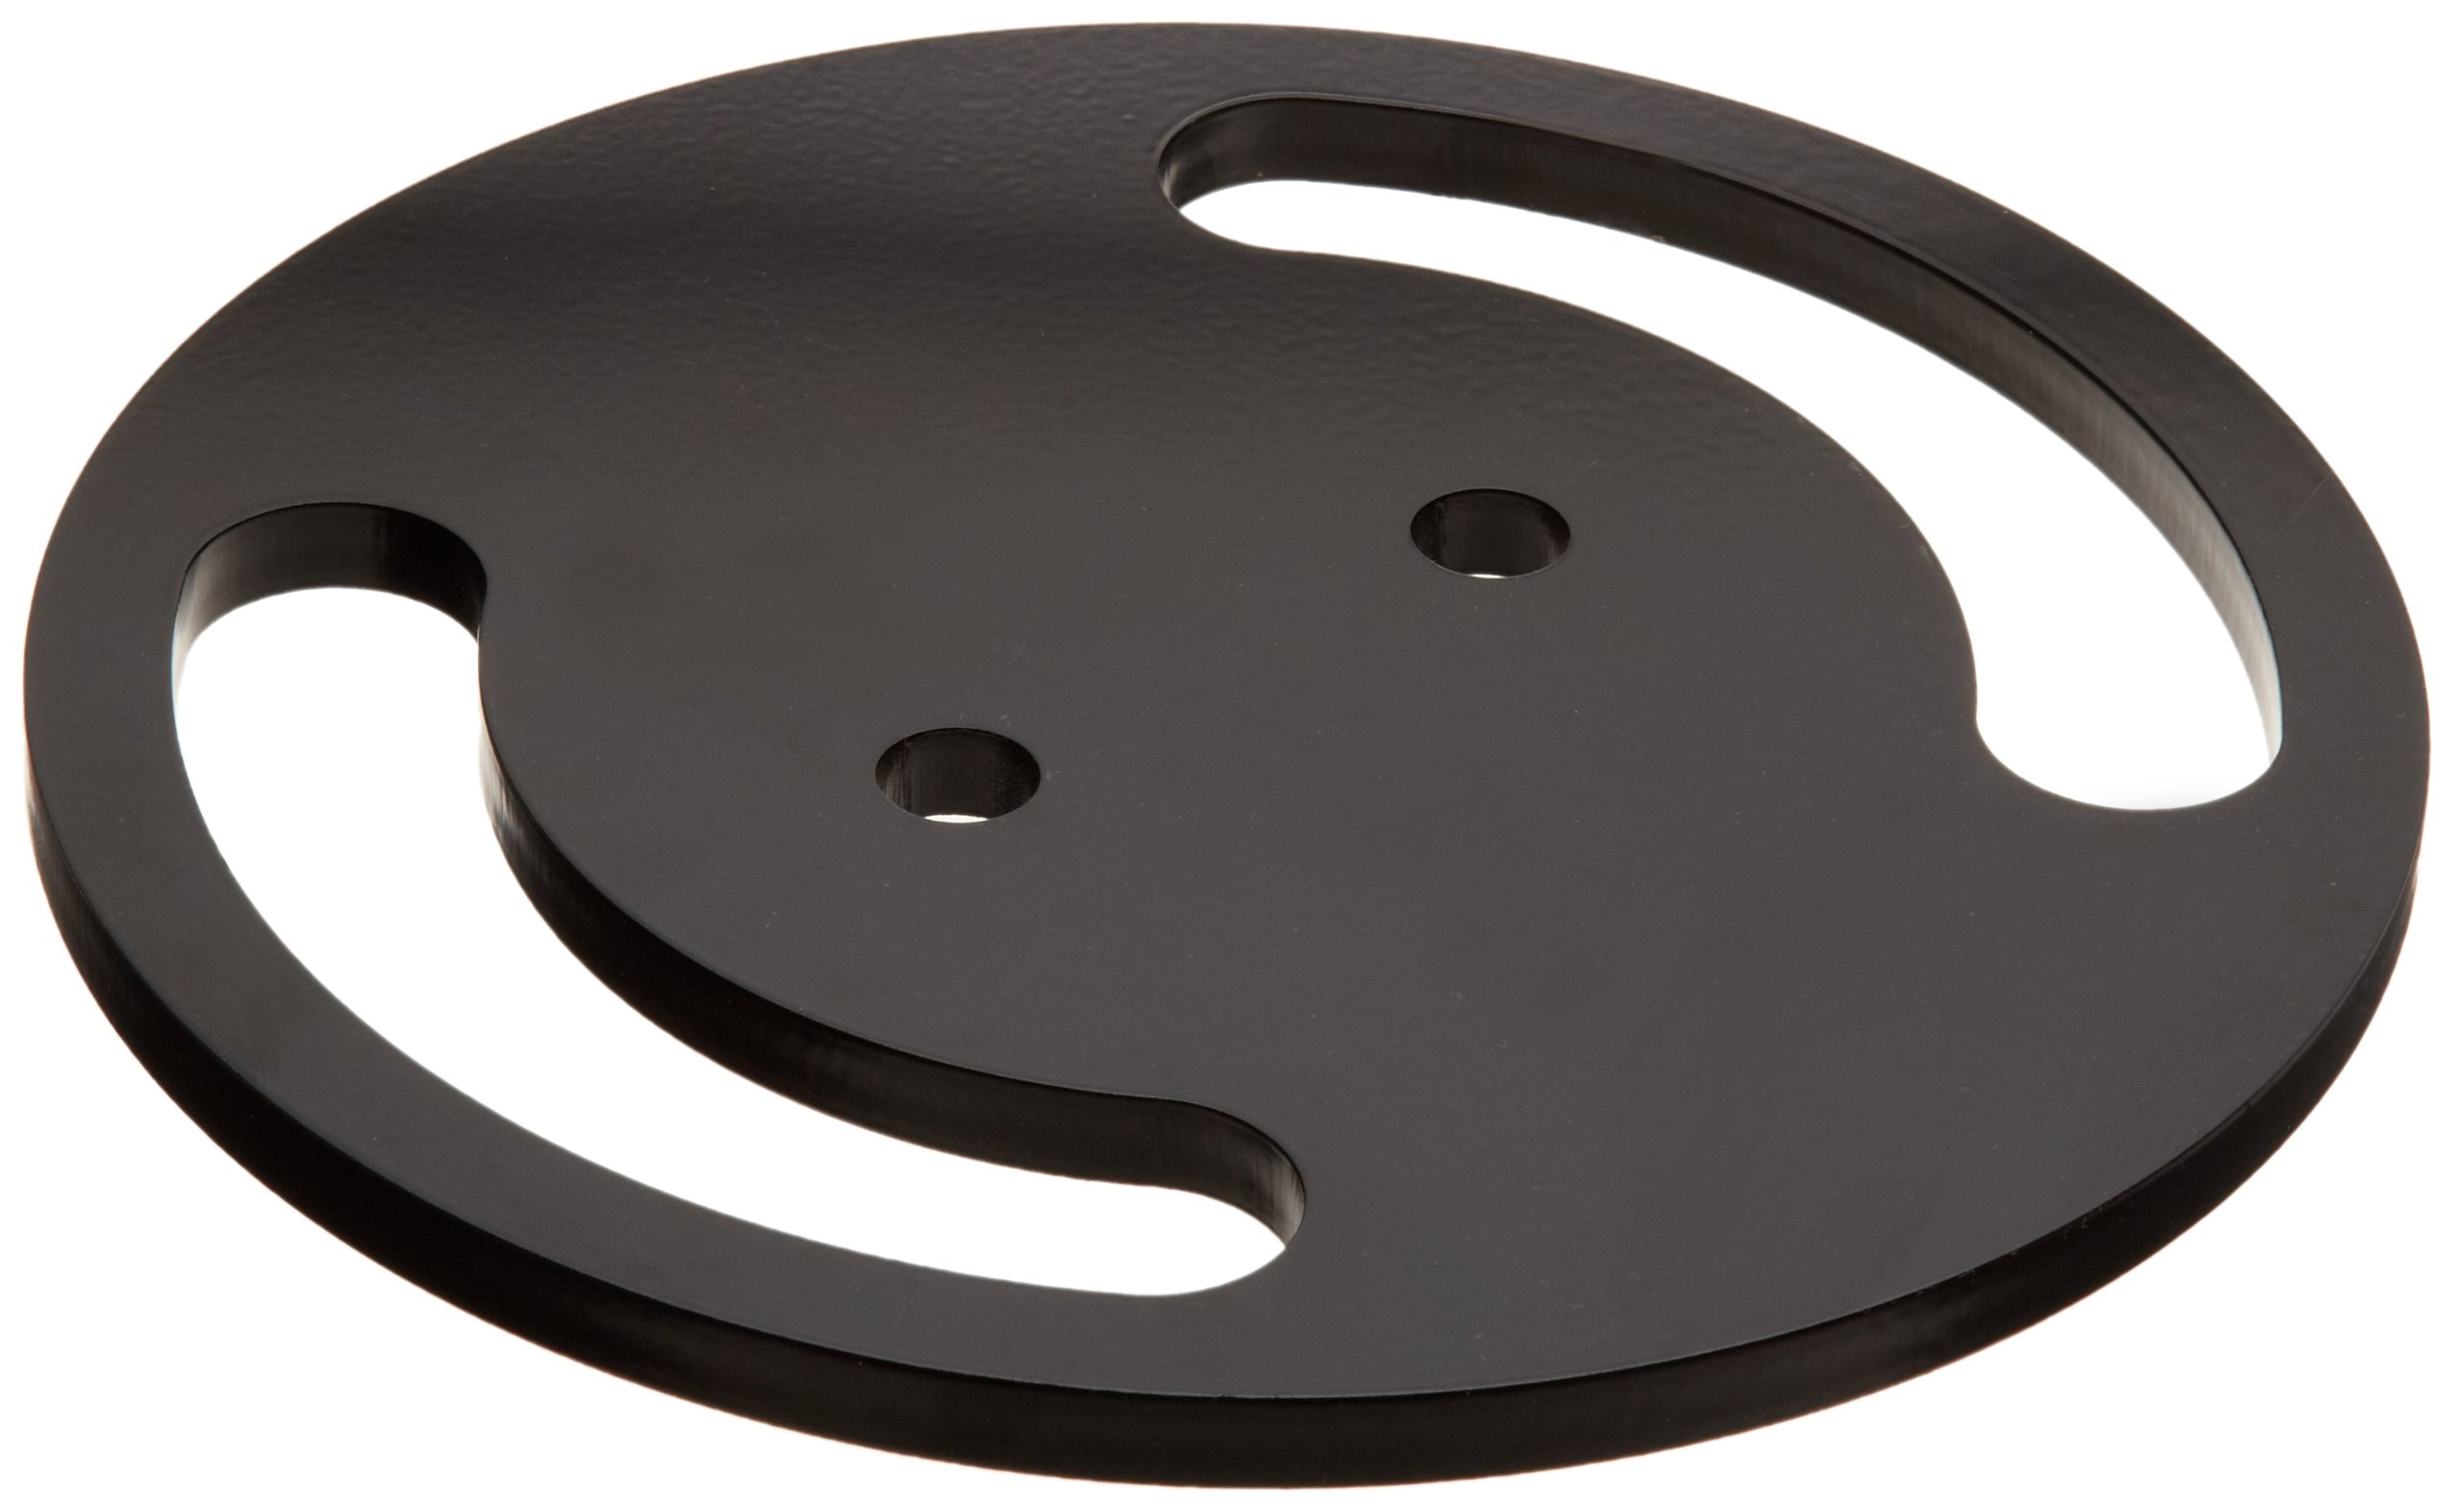 Posi Lock PH-11352 Puller Guard Lift Plate, For Use With PH-113 and PH-213